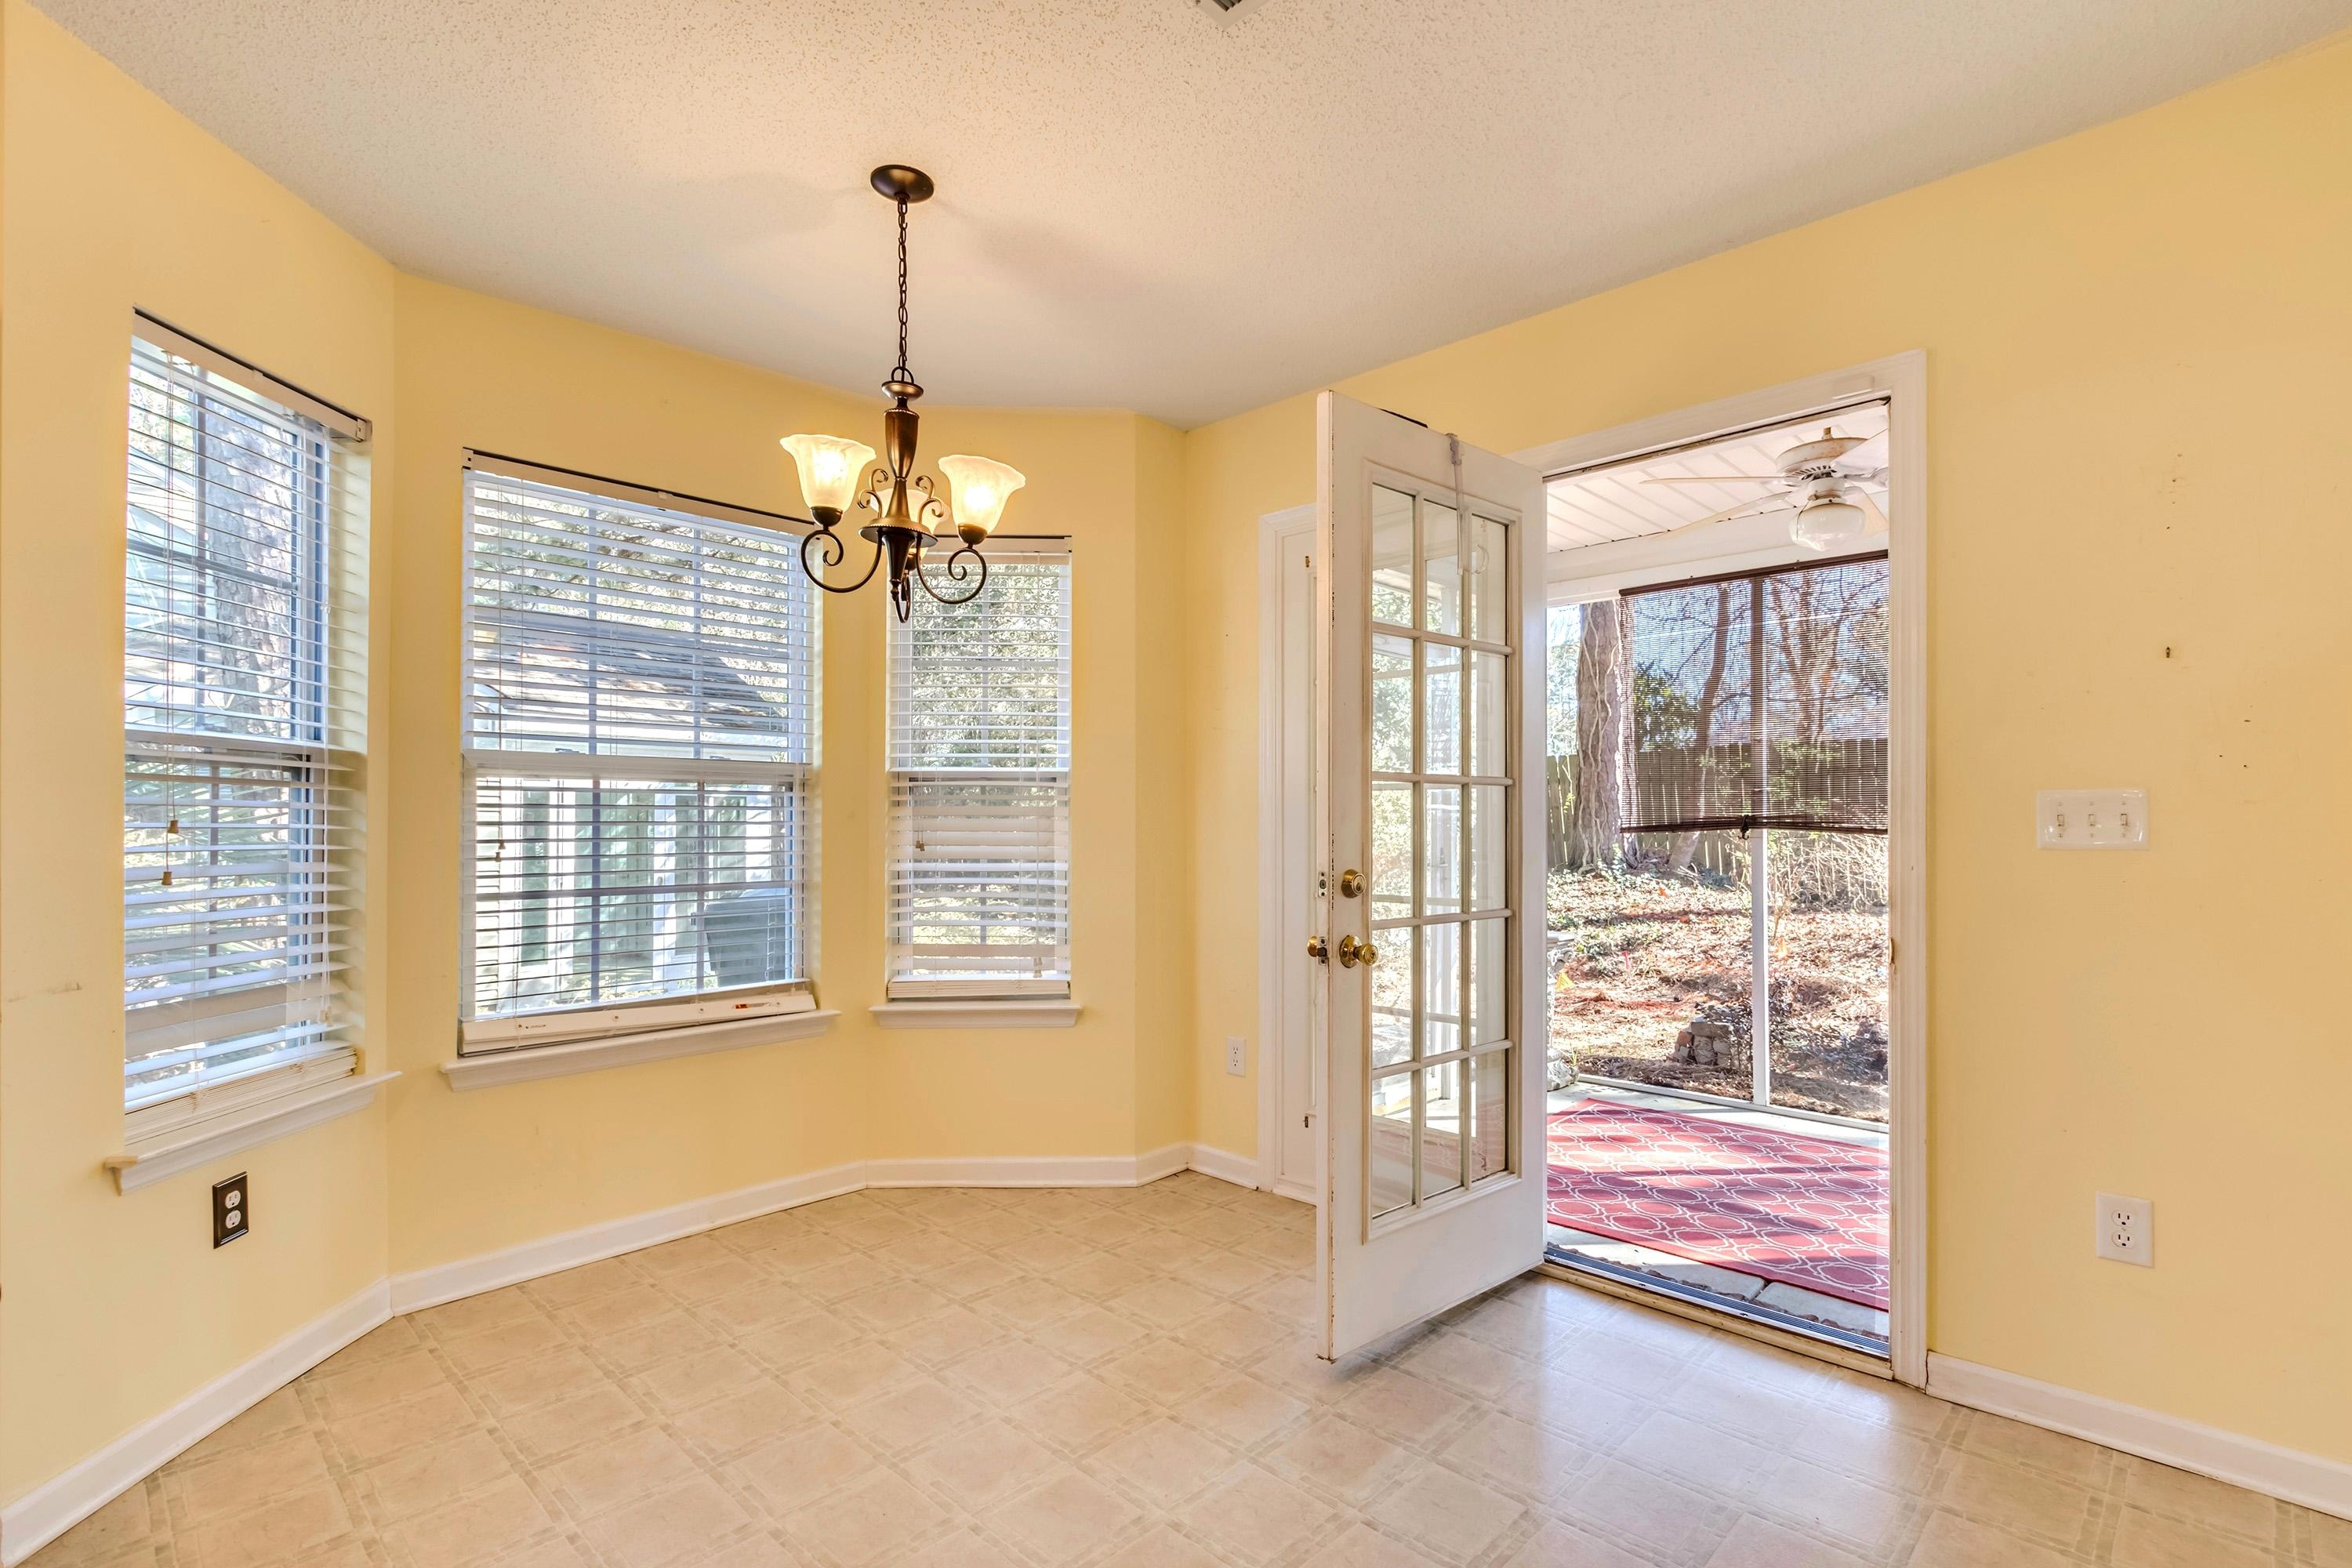 Persimmon Hill Townhouses Homes For Sale - 111 Taylor, Goose Creek, SC - 23